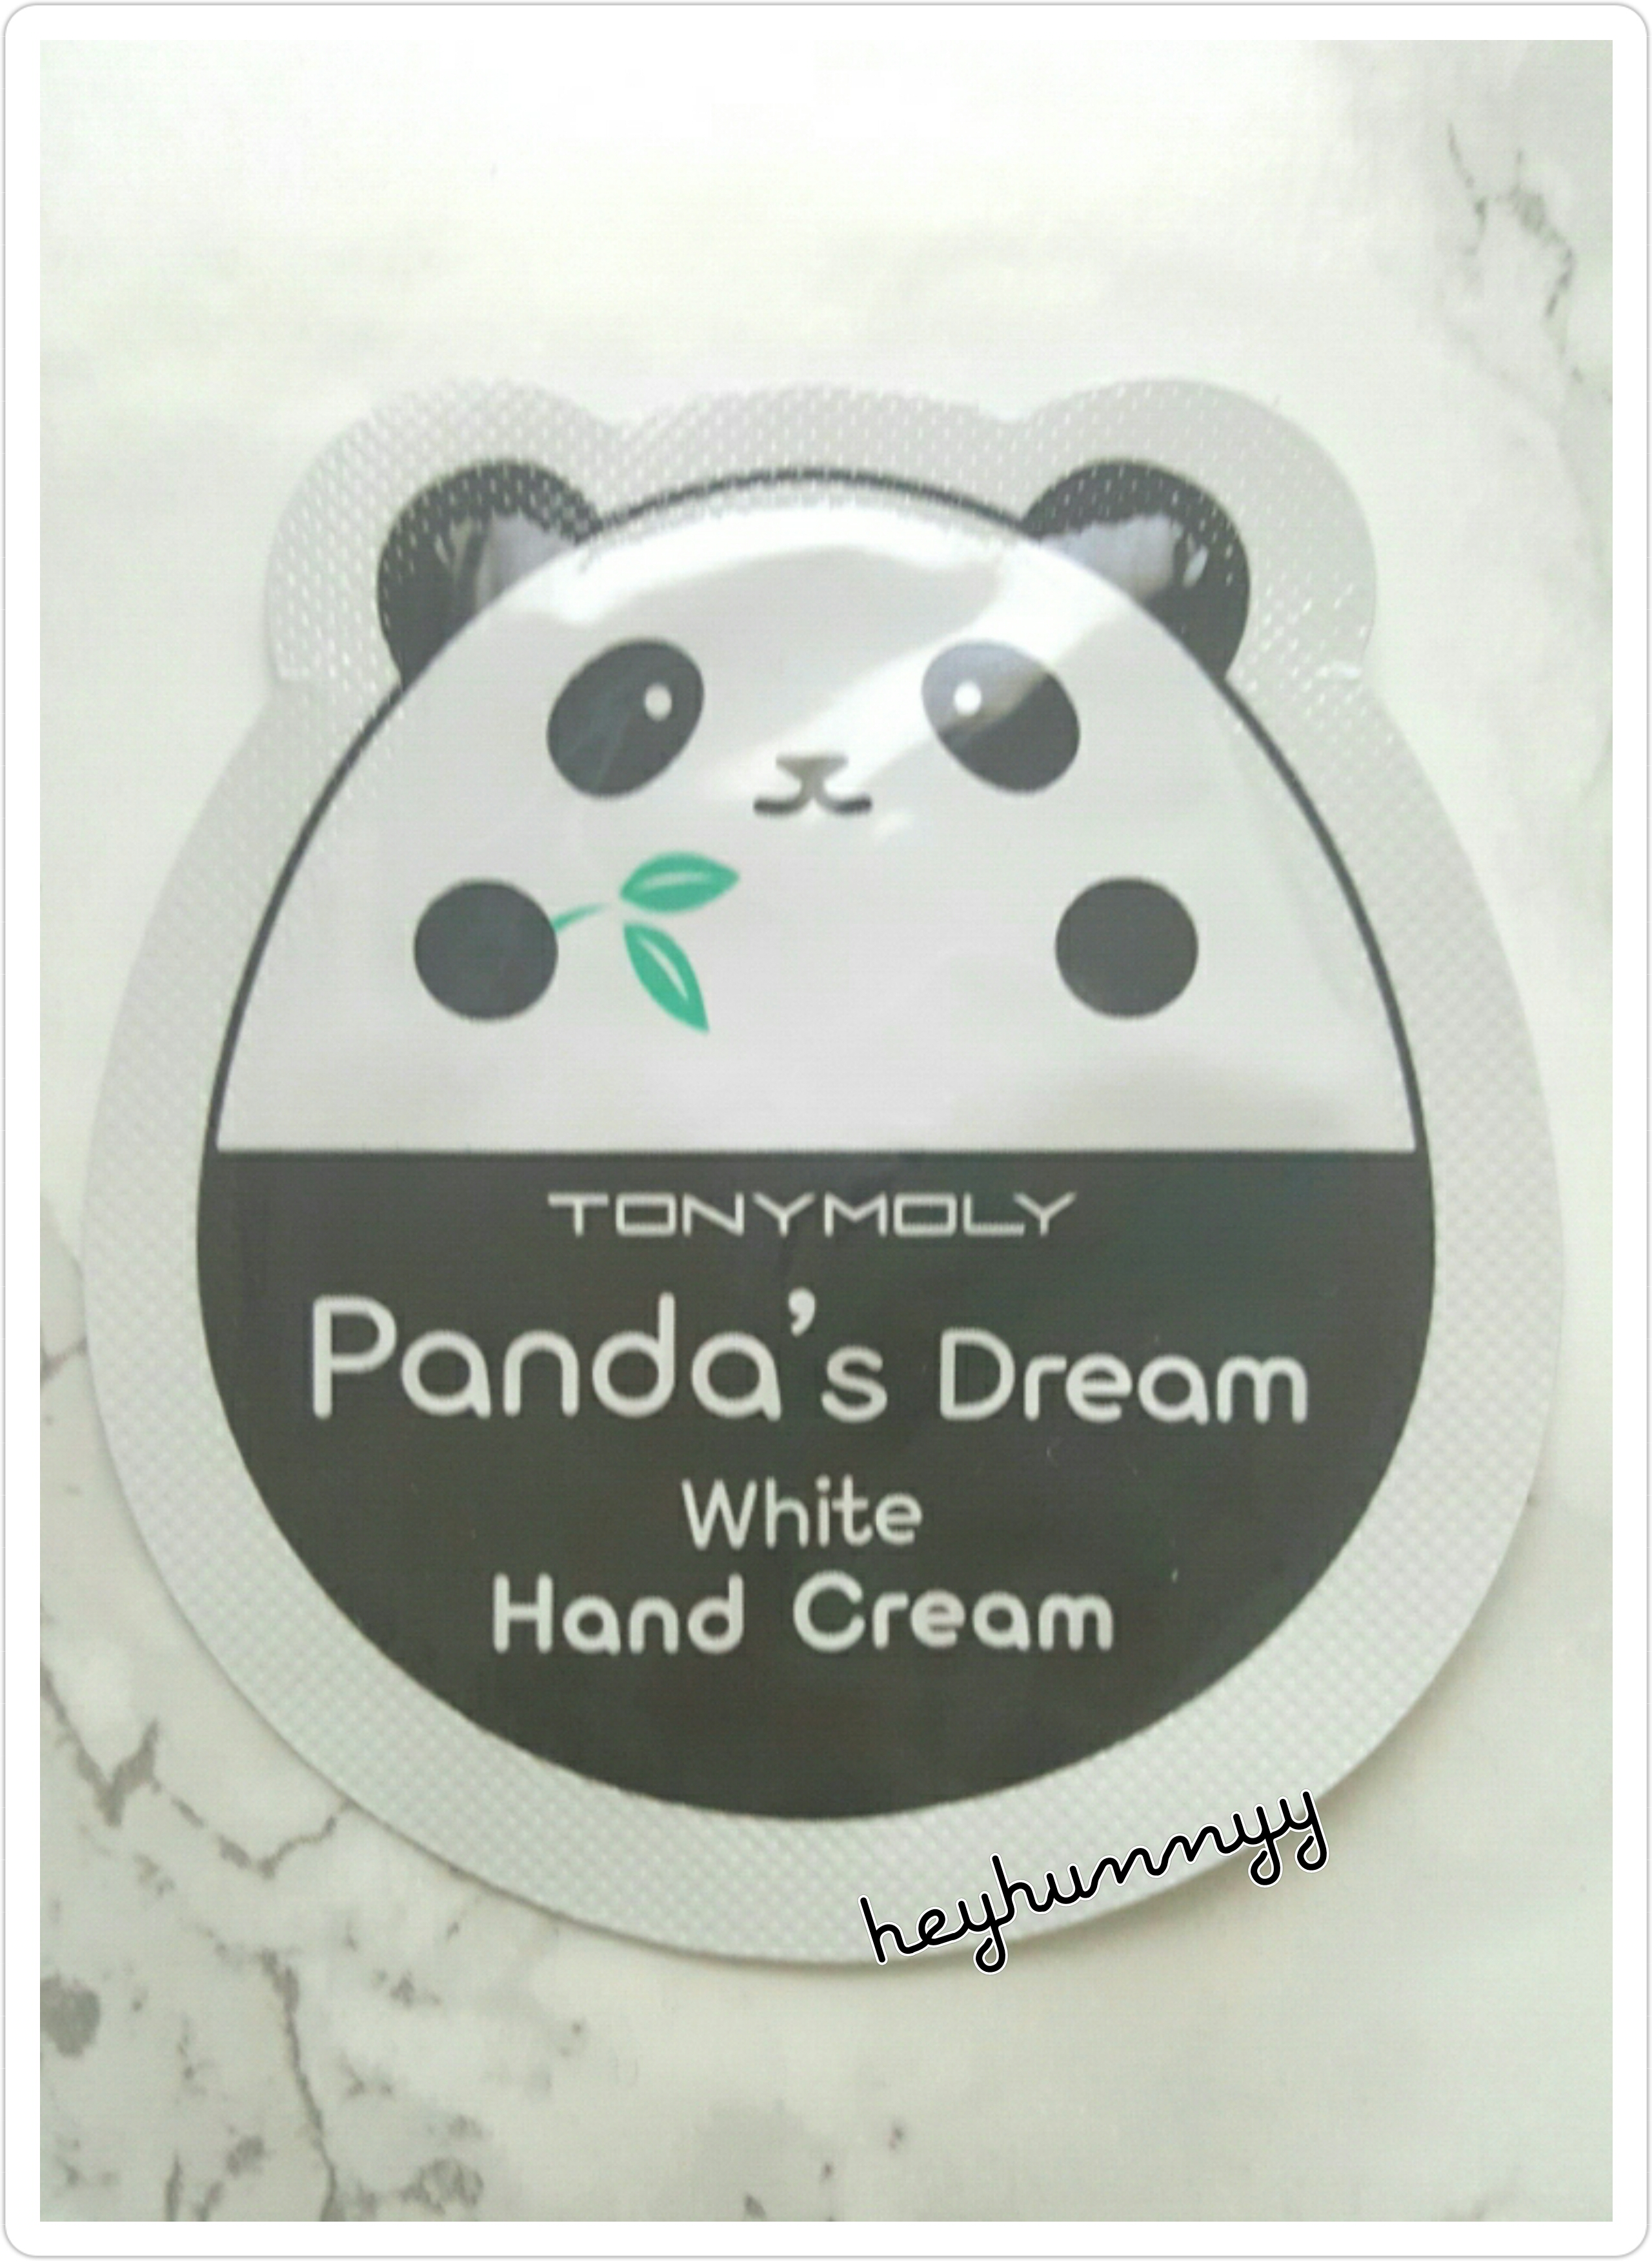 ::REVIEW:: Tony Moly - Panda's Dream Hand Cream!